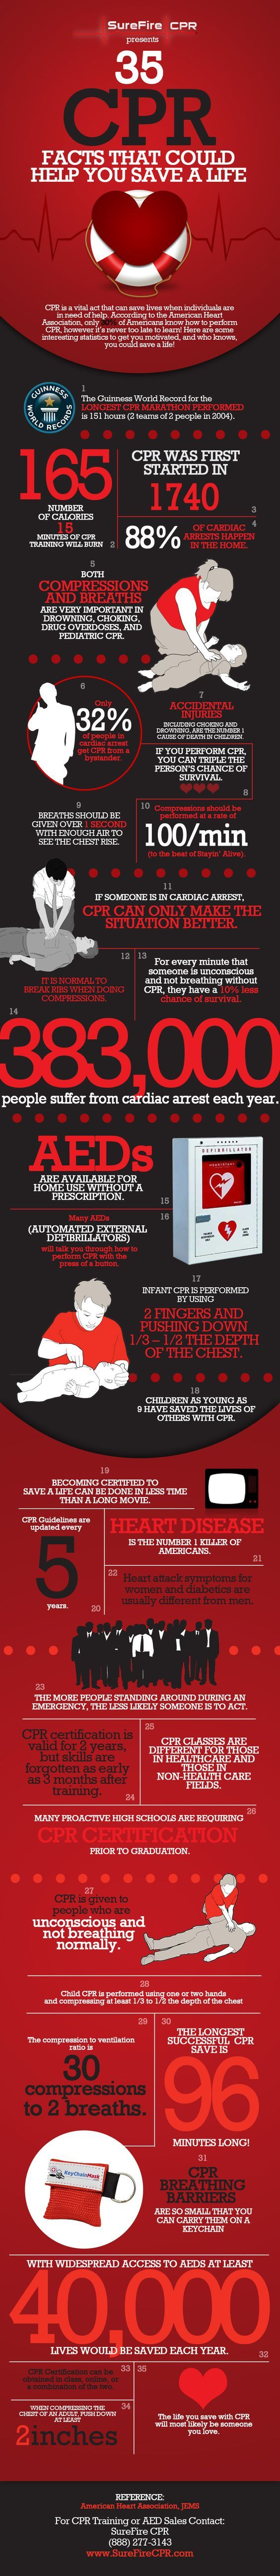 35 CPR Facts that Save Lives. Did you know that AEDs are available now for home use without a prescription? Use an AED with CPR to save lives. We cover this topic in our article here: http://insidefirstaid.com/emergencies/learn-how-to-perform-cpr-or-cardiopulmonary-resuscitation #cpr #training #aed